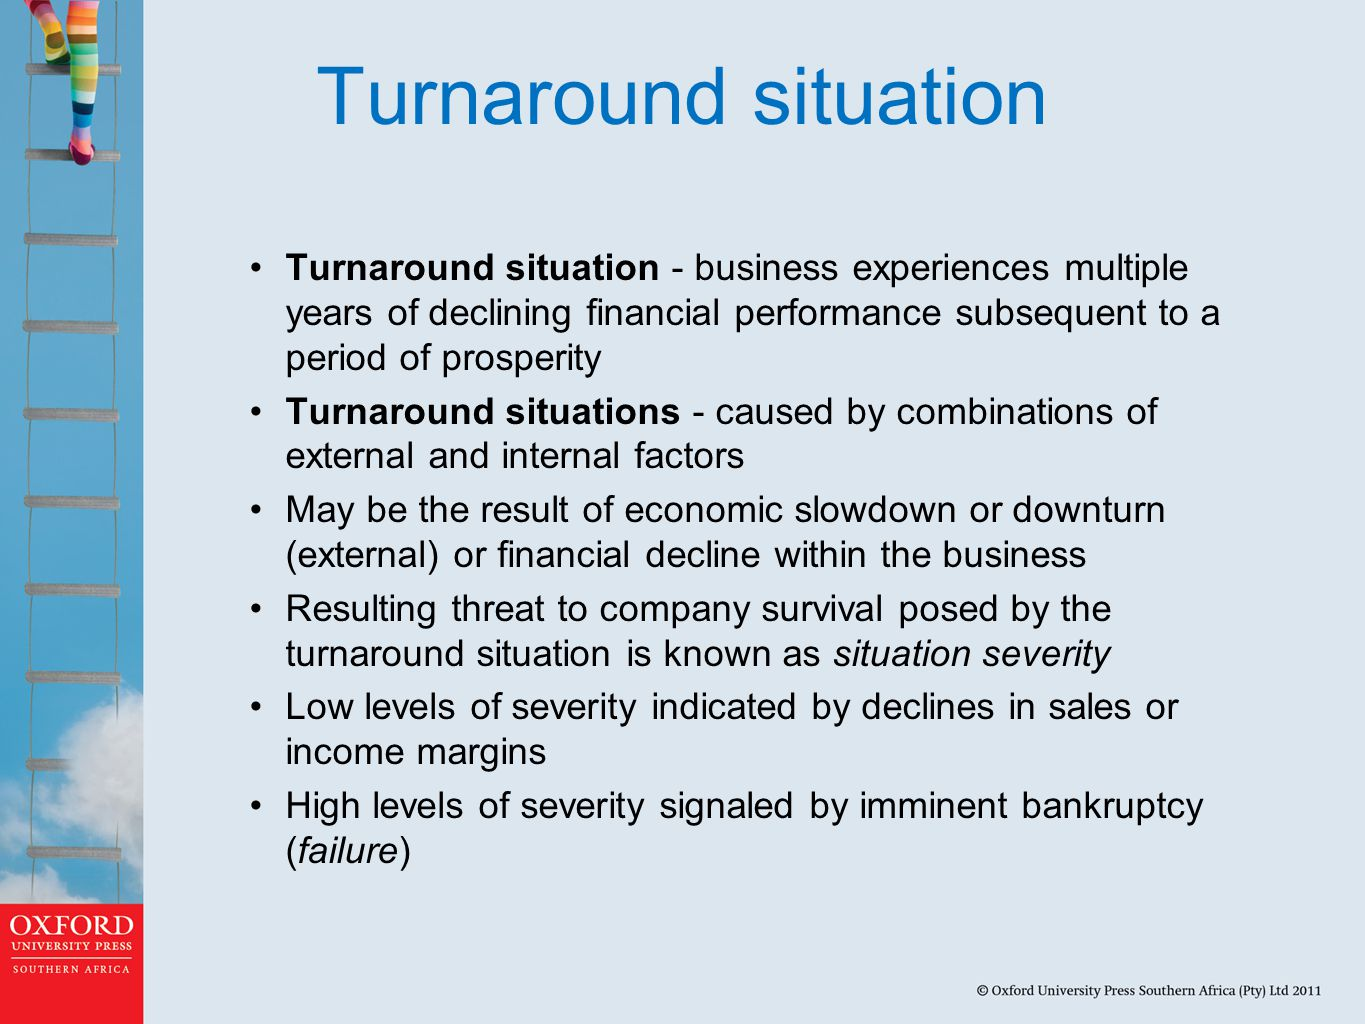 Turnaround situation Turnaround situation - business experiences multiple years of declining financial performance subsequent to a period of prosperity Turnaround situations - caused by combinations of external and internal factors May be the result of economic slowdown or downturn (external) or financial decline within the business Resulting threat to company survival posed by the turnaround situation is known as situation severity Low levels of severity indicated by declines in sales or income margins High levels of severity signaled by imminent bankruptcy (failure)